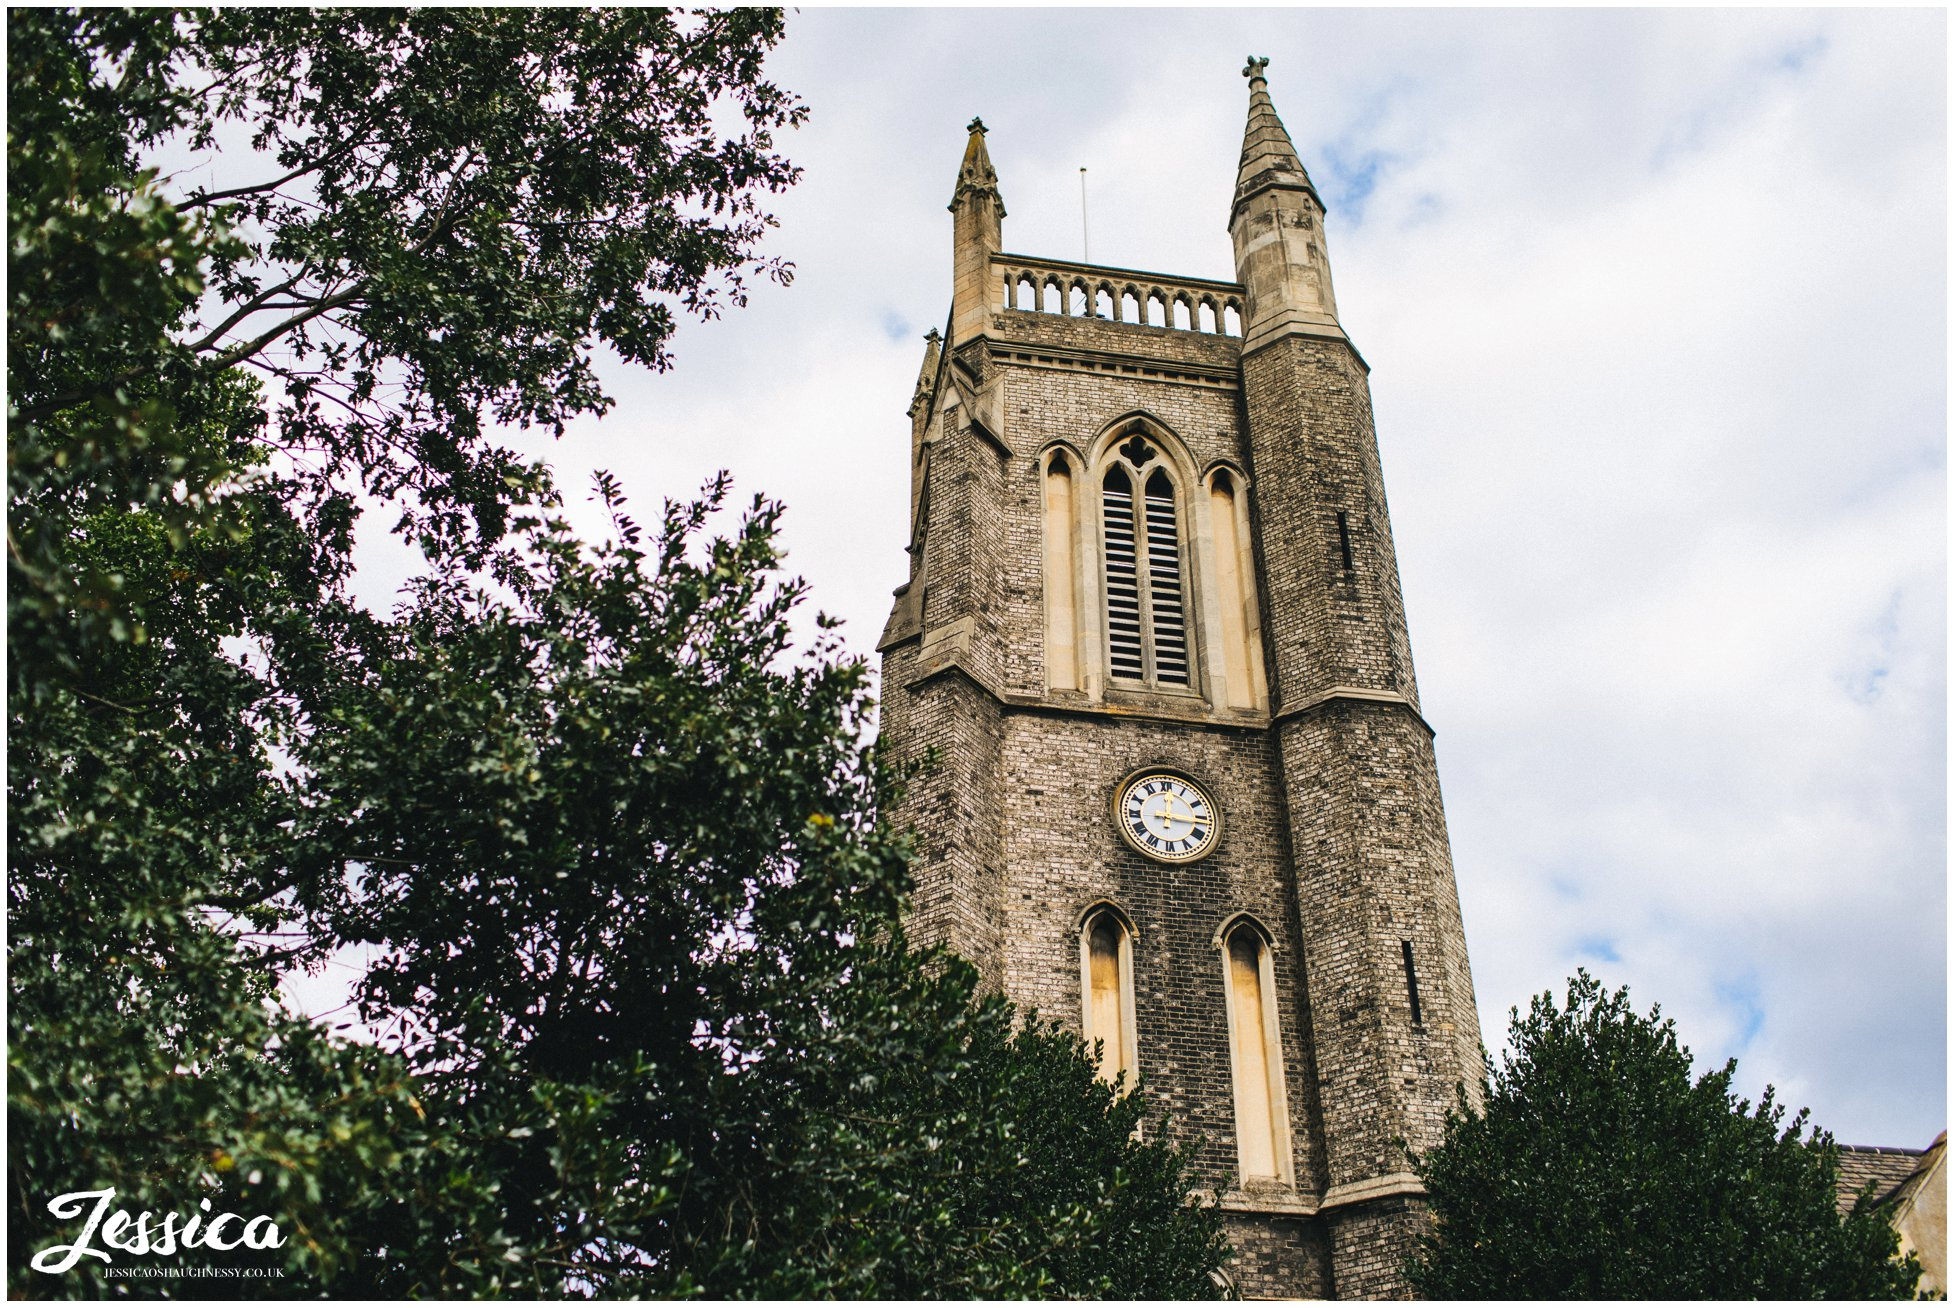 photograph of the church in london